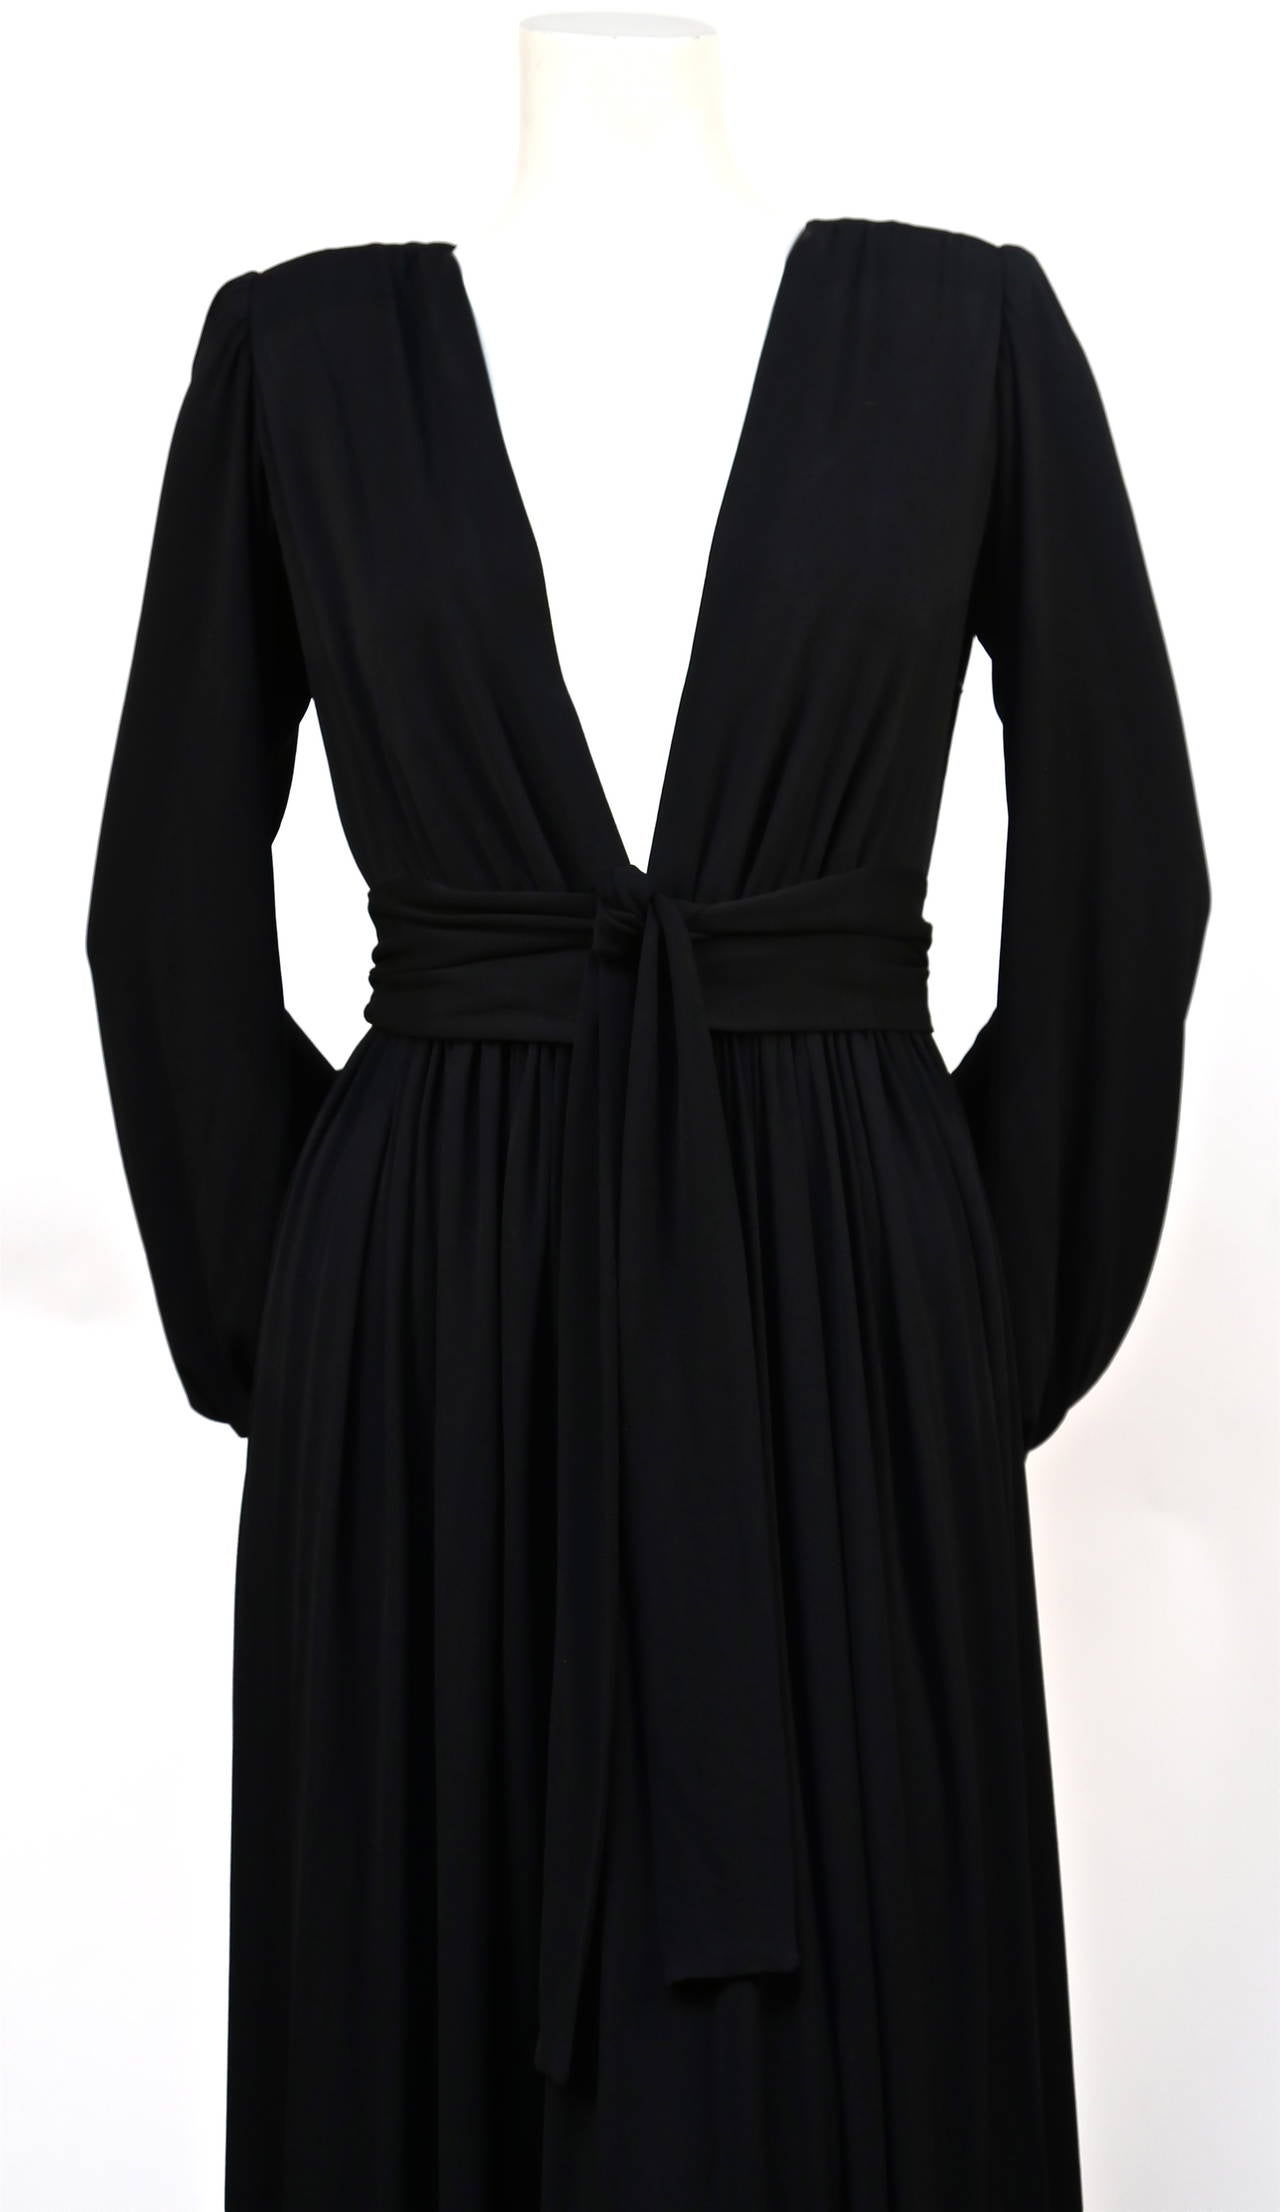 "Exceptional jet black jersey gown with deep V neckline, billowy sleeves and wrap belt from Yves Saint Laurent dating to the late 1970's. Labeled a French size 36"". Approximate measurements: shoulders 14"", bust 32-33"", waist 24"", arm length 28"" and"